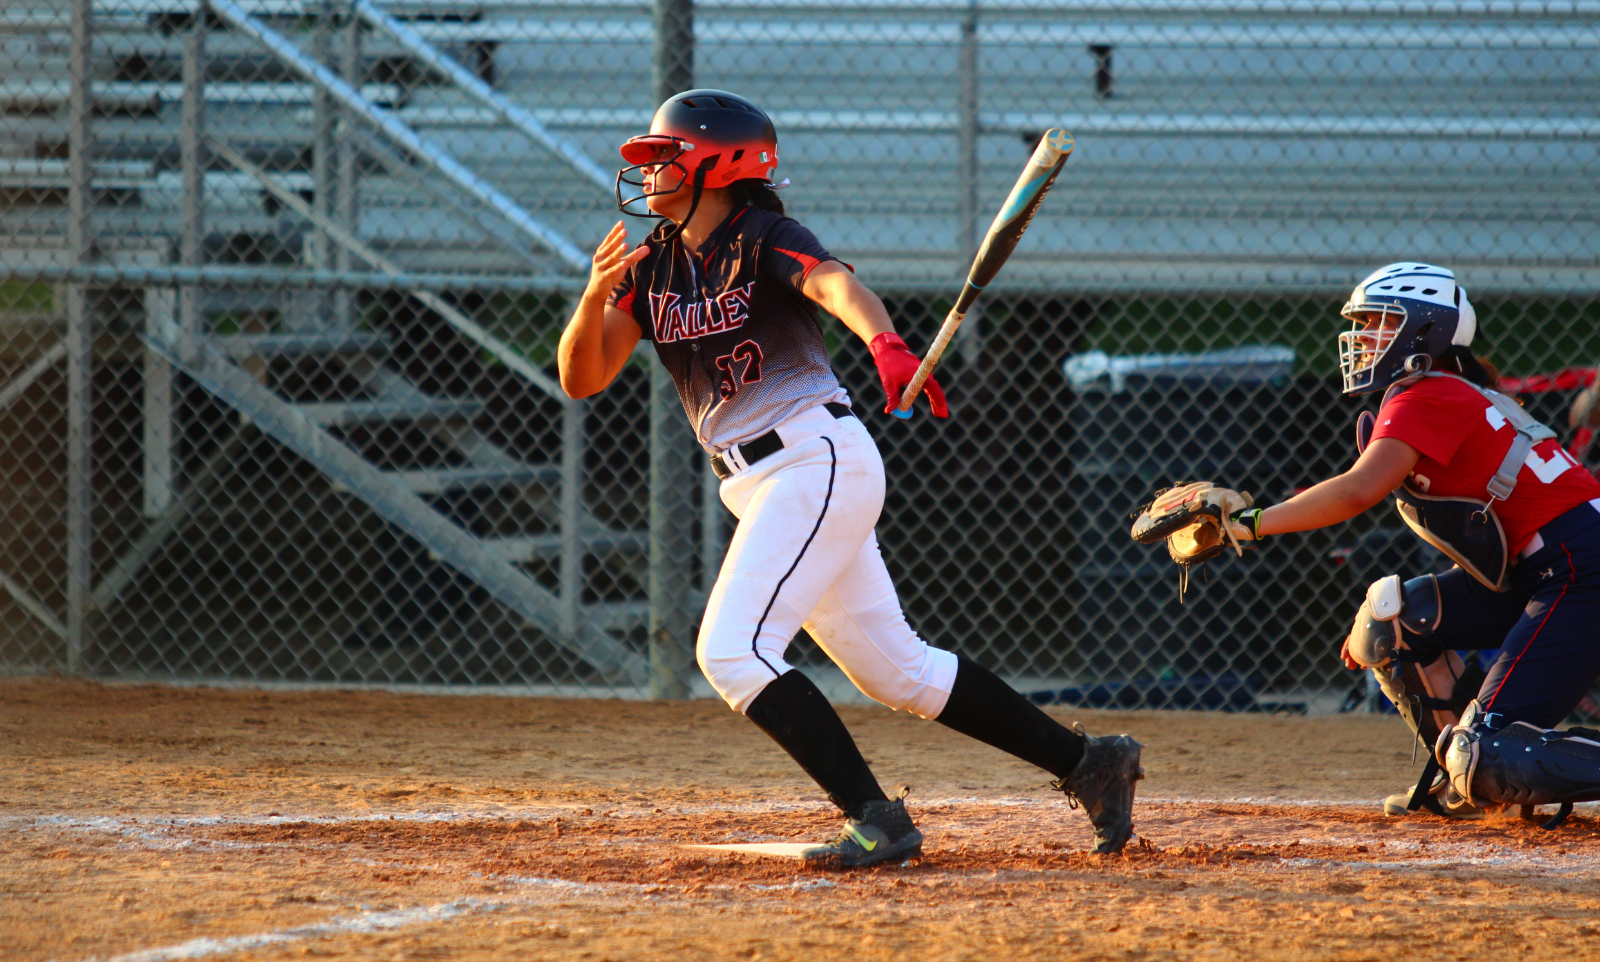 Photo from Valley vs. Urbandale softball game.